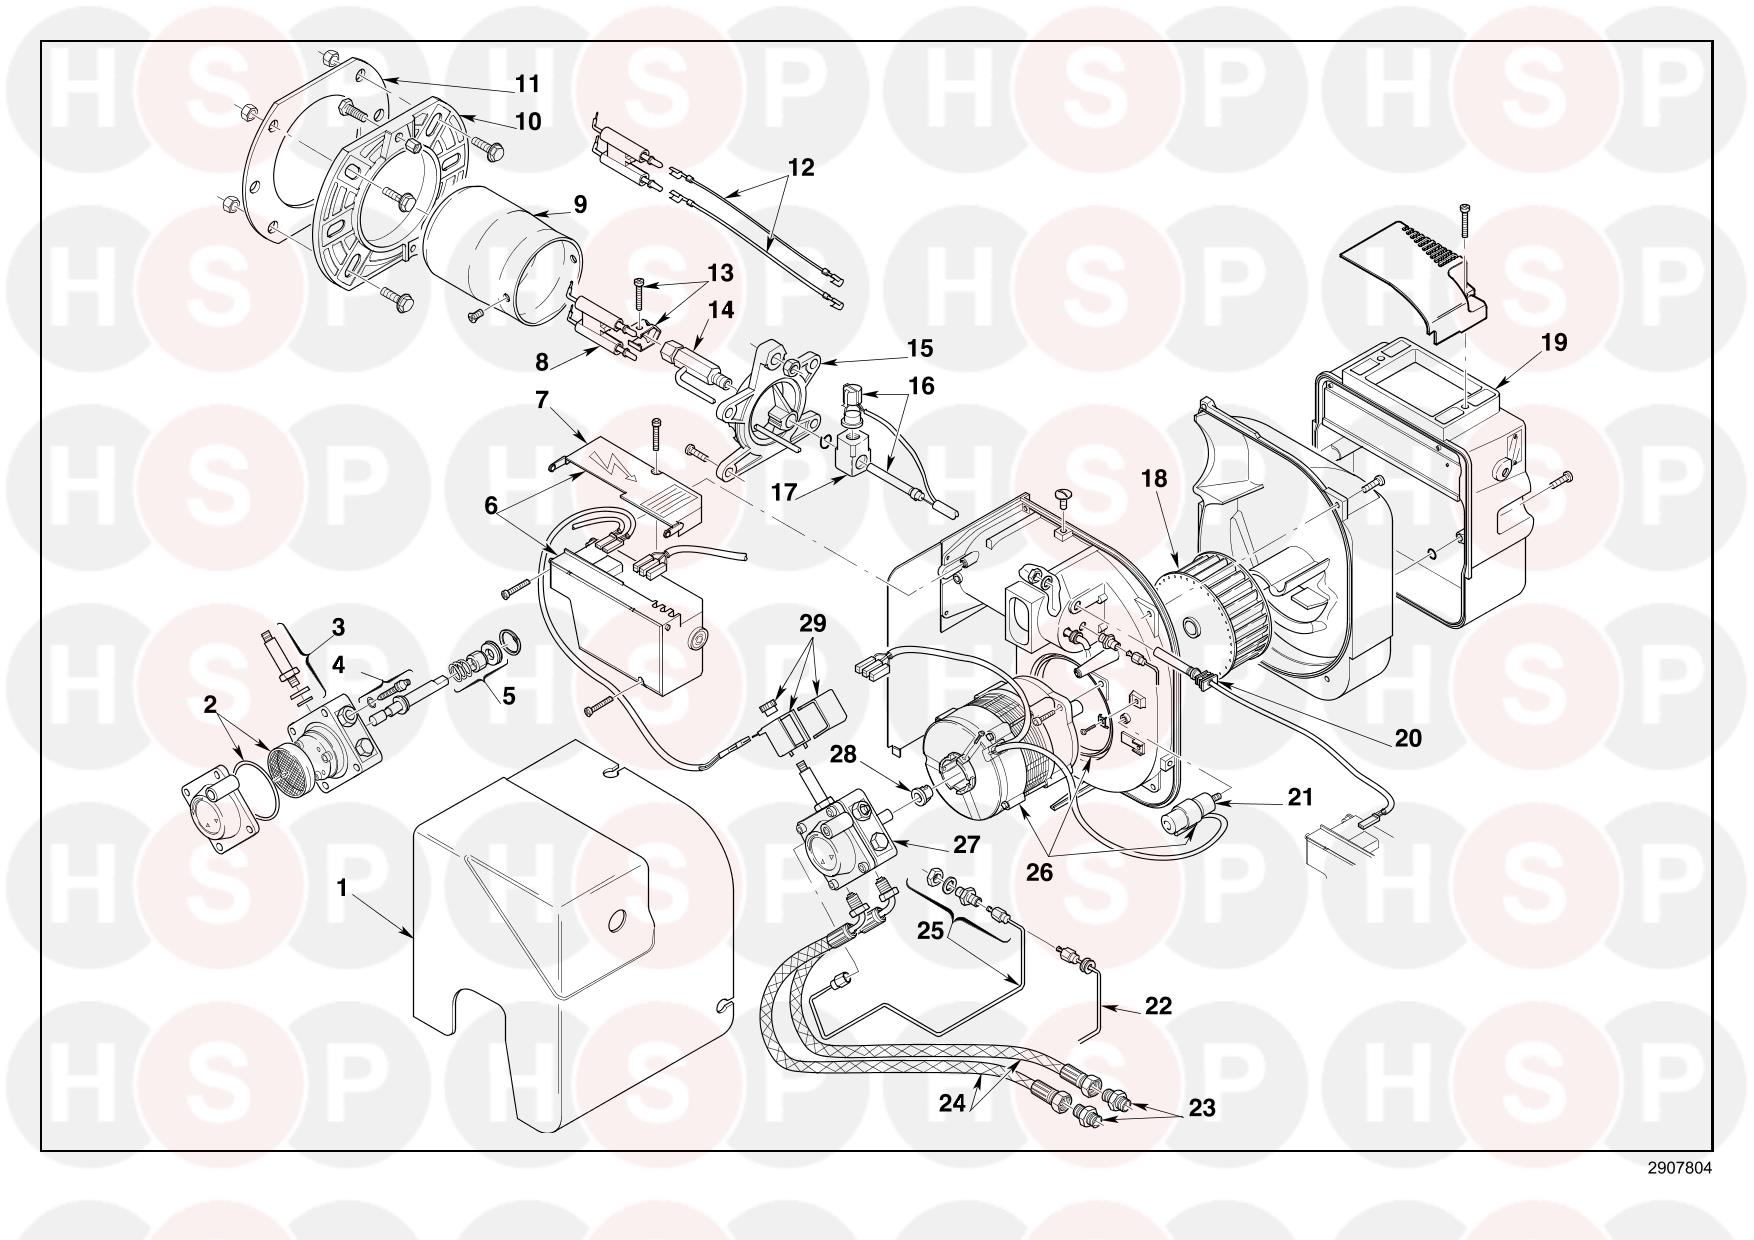 EXPLODED VIEW diagram for Riello RDB1R CF 33 (TYPE 501T2R)